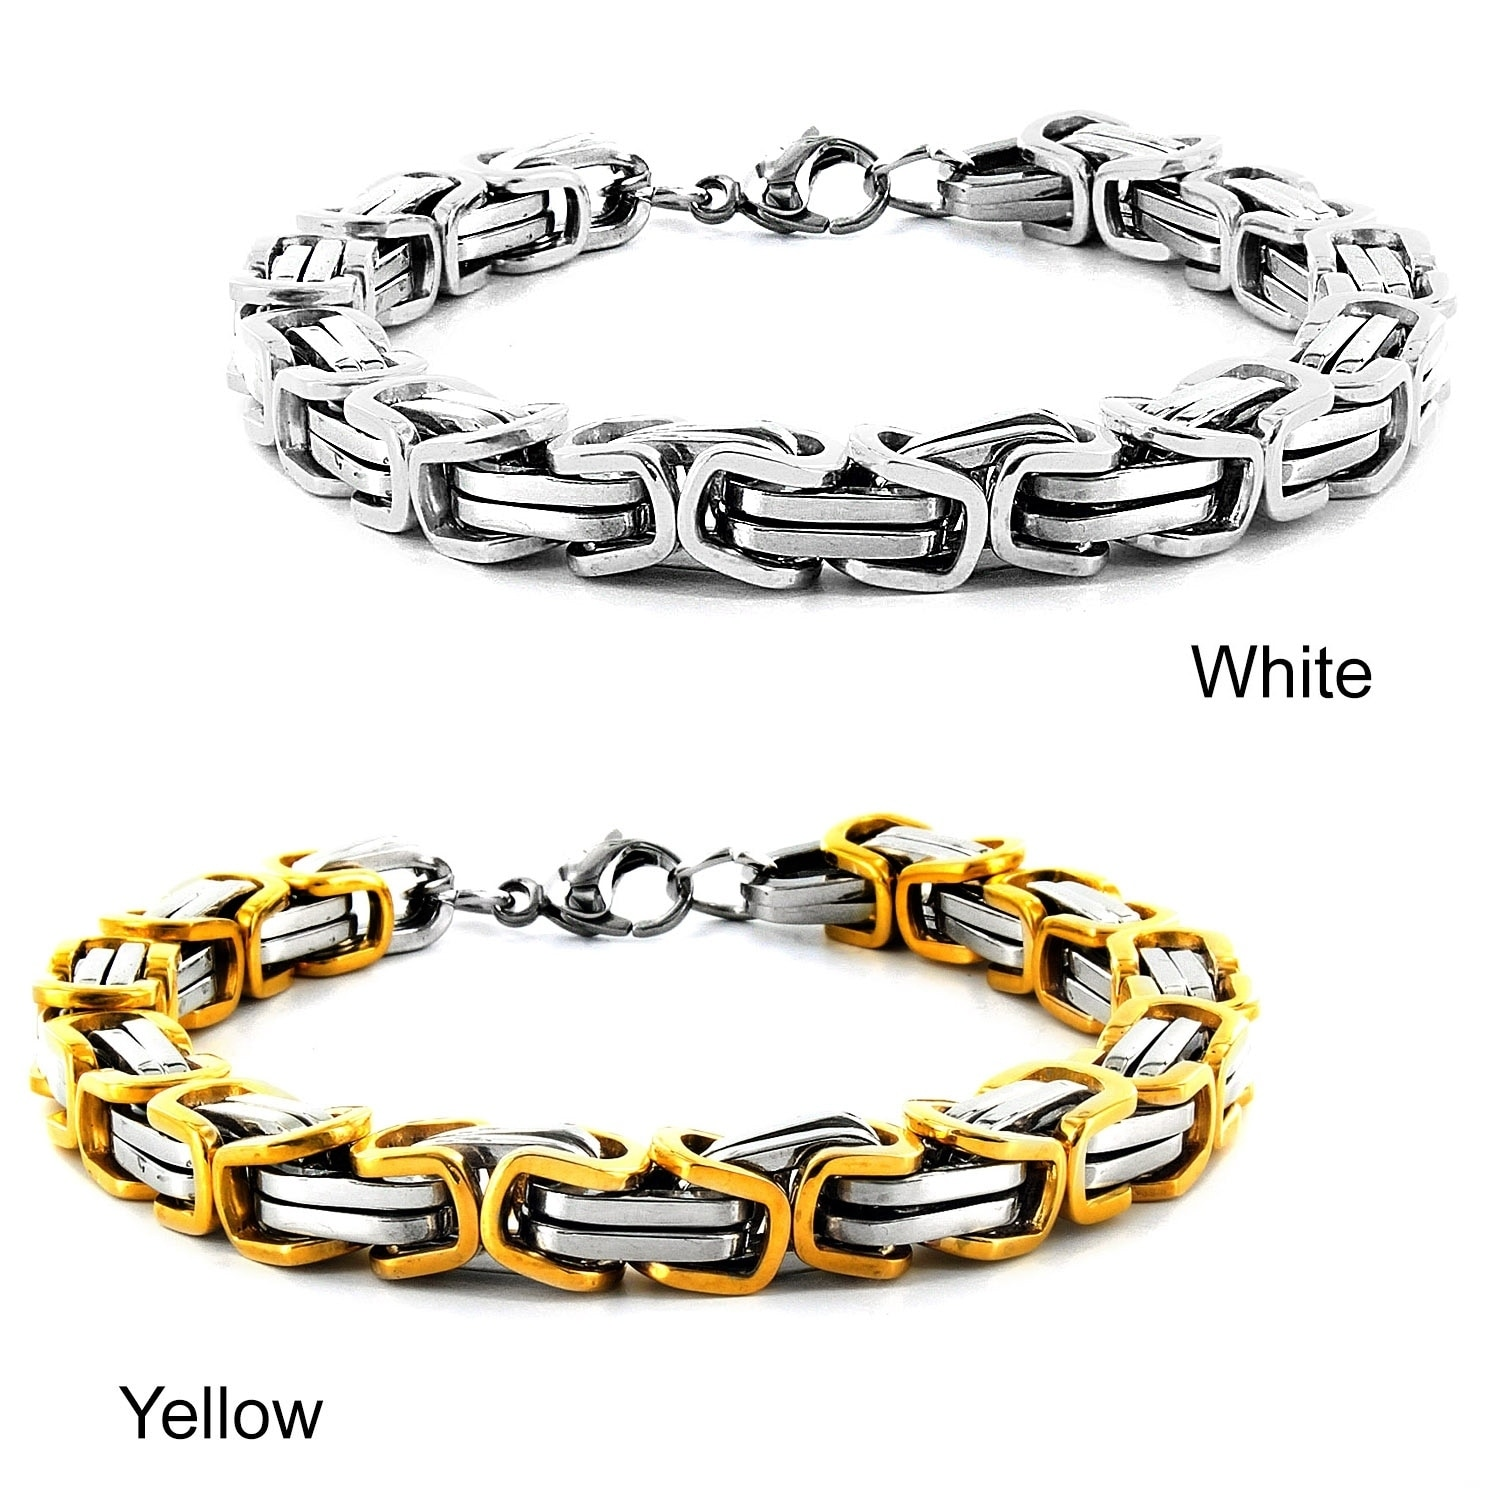 Stainless Steel Byzantine Bracelet Free Shipping On Orders Over 45 7310818